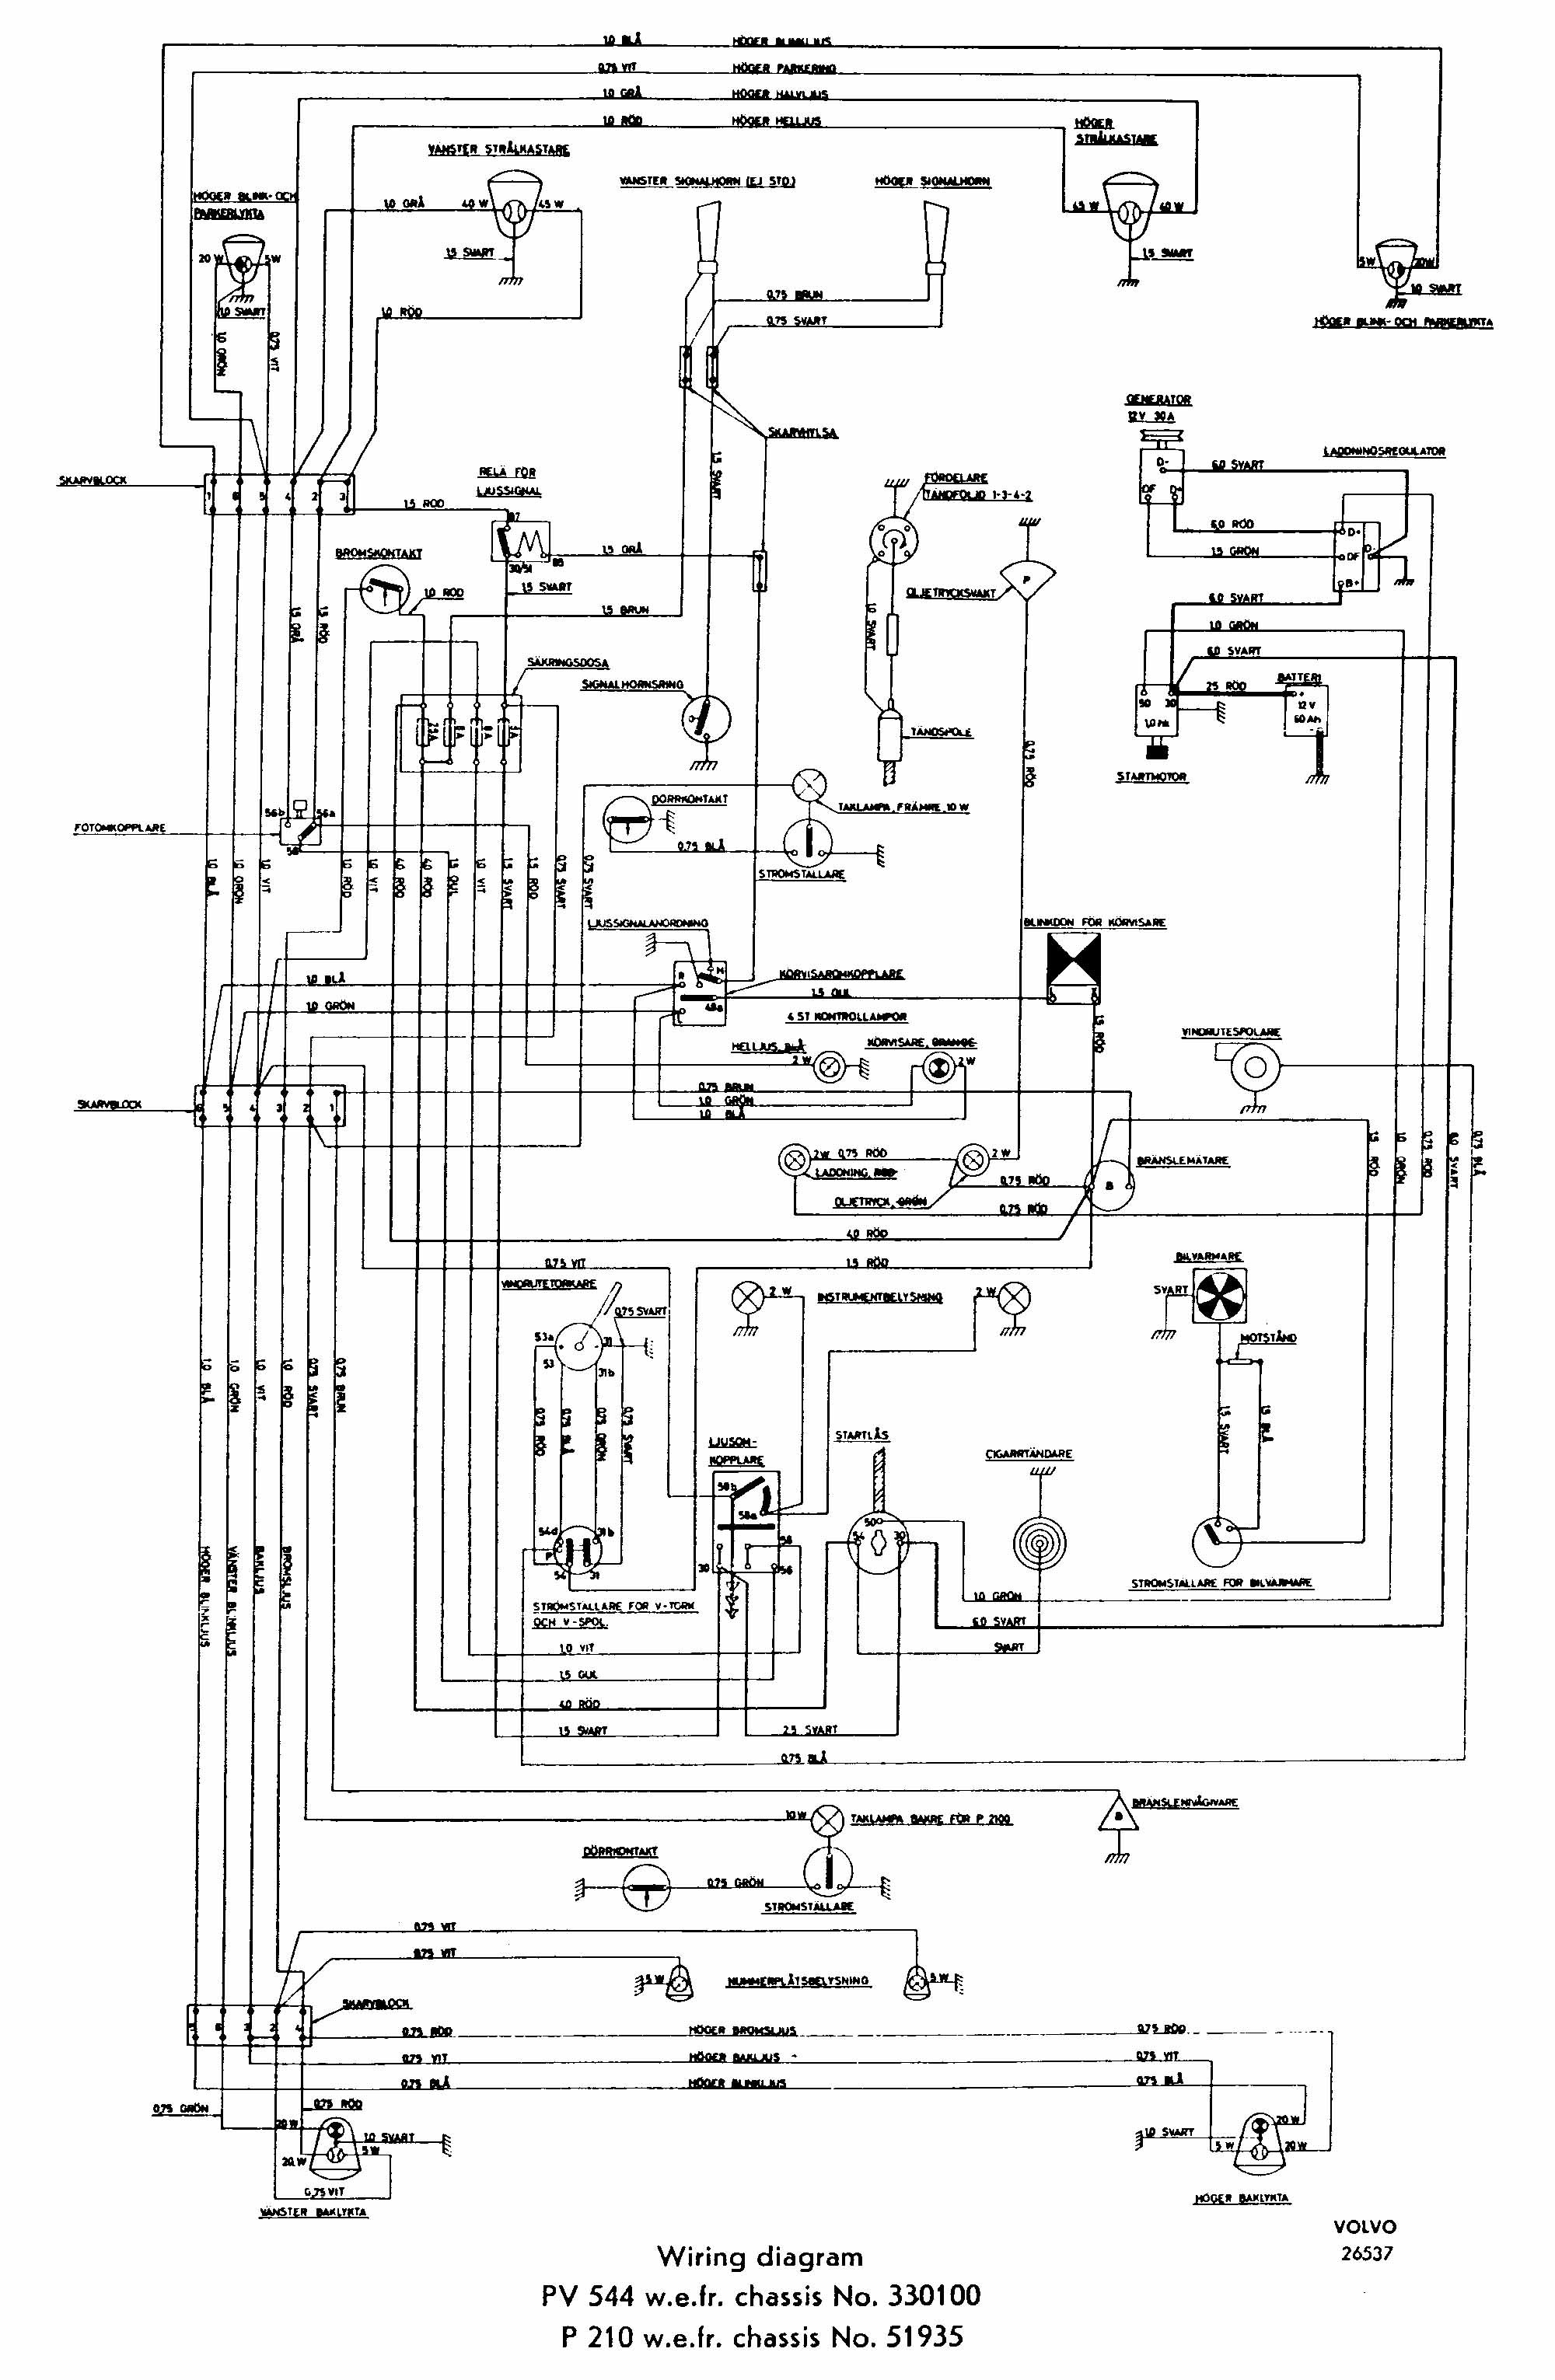 Volvo Trucks Wiring Diagram from detoxicrecenze.com